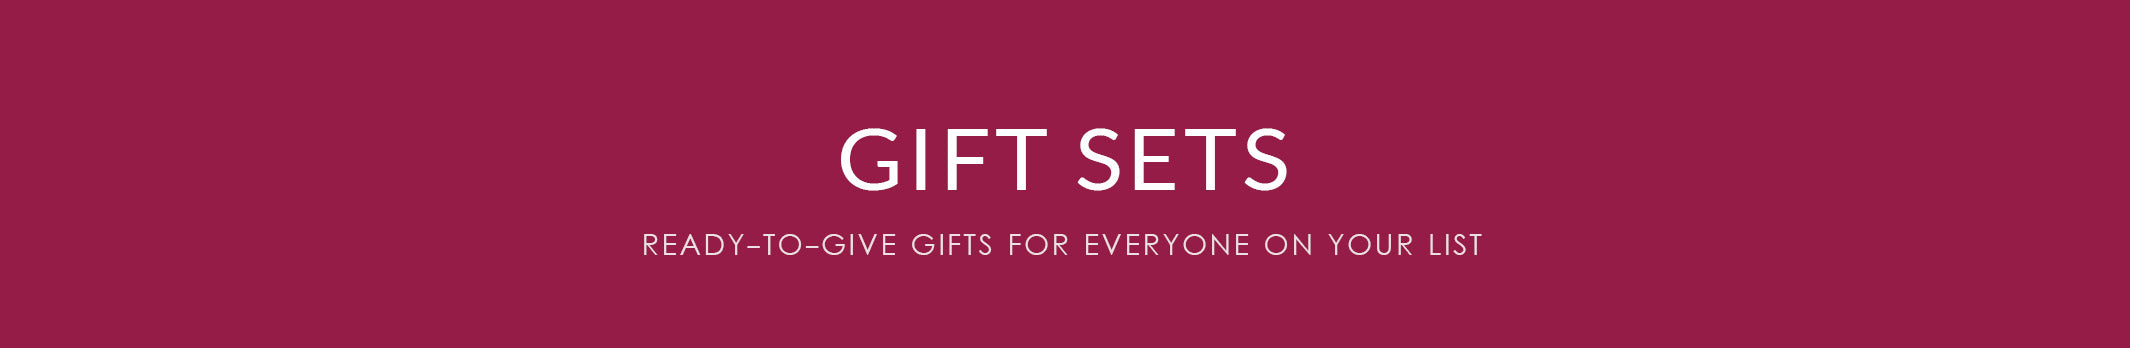 Gift Sets for Her and Everyone On Your List